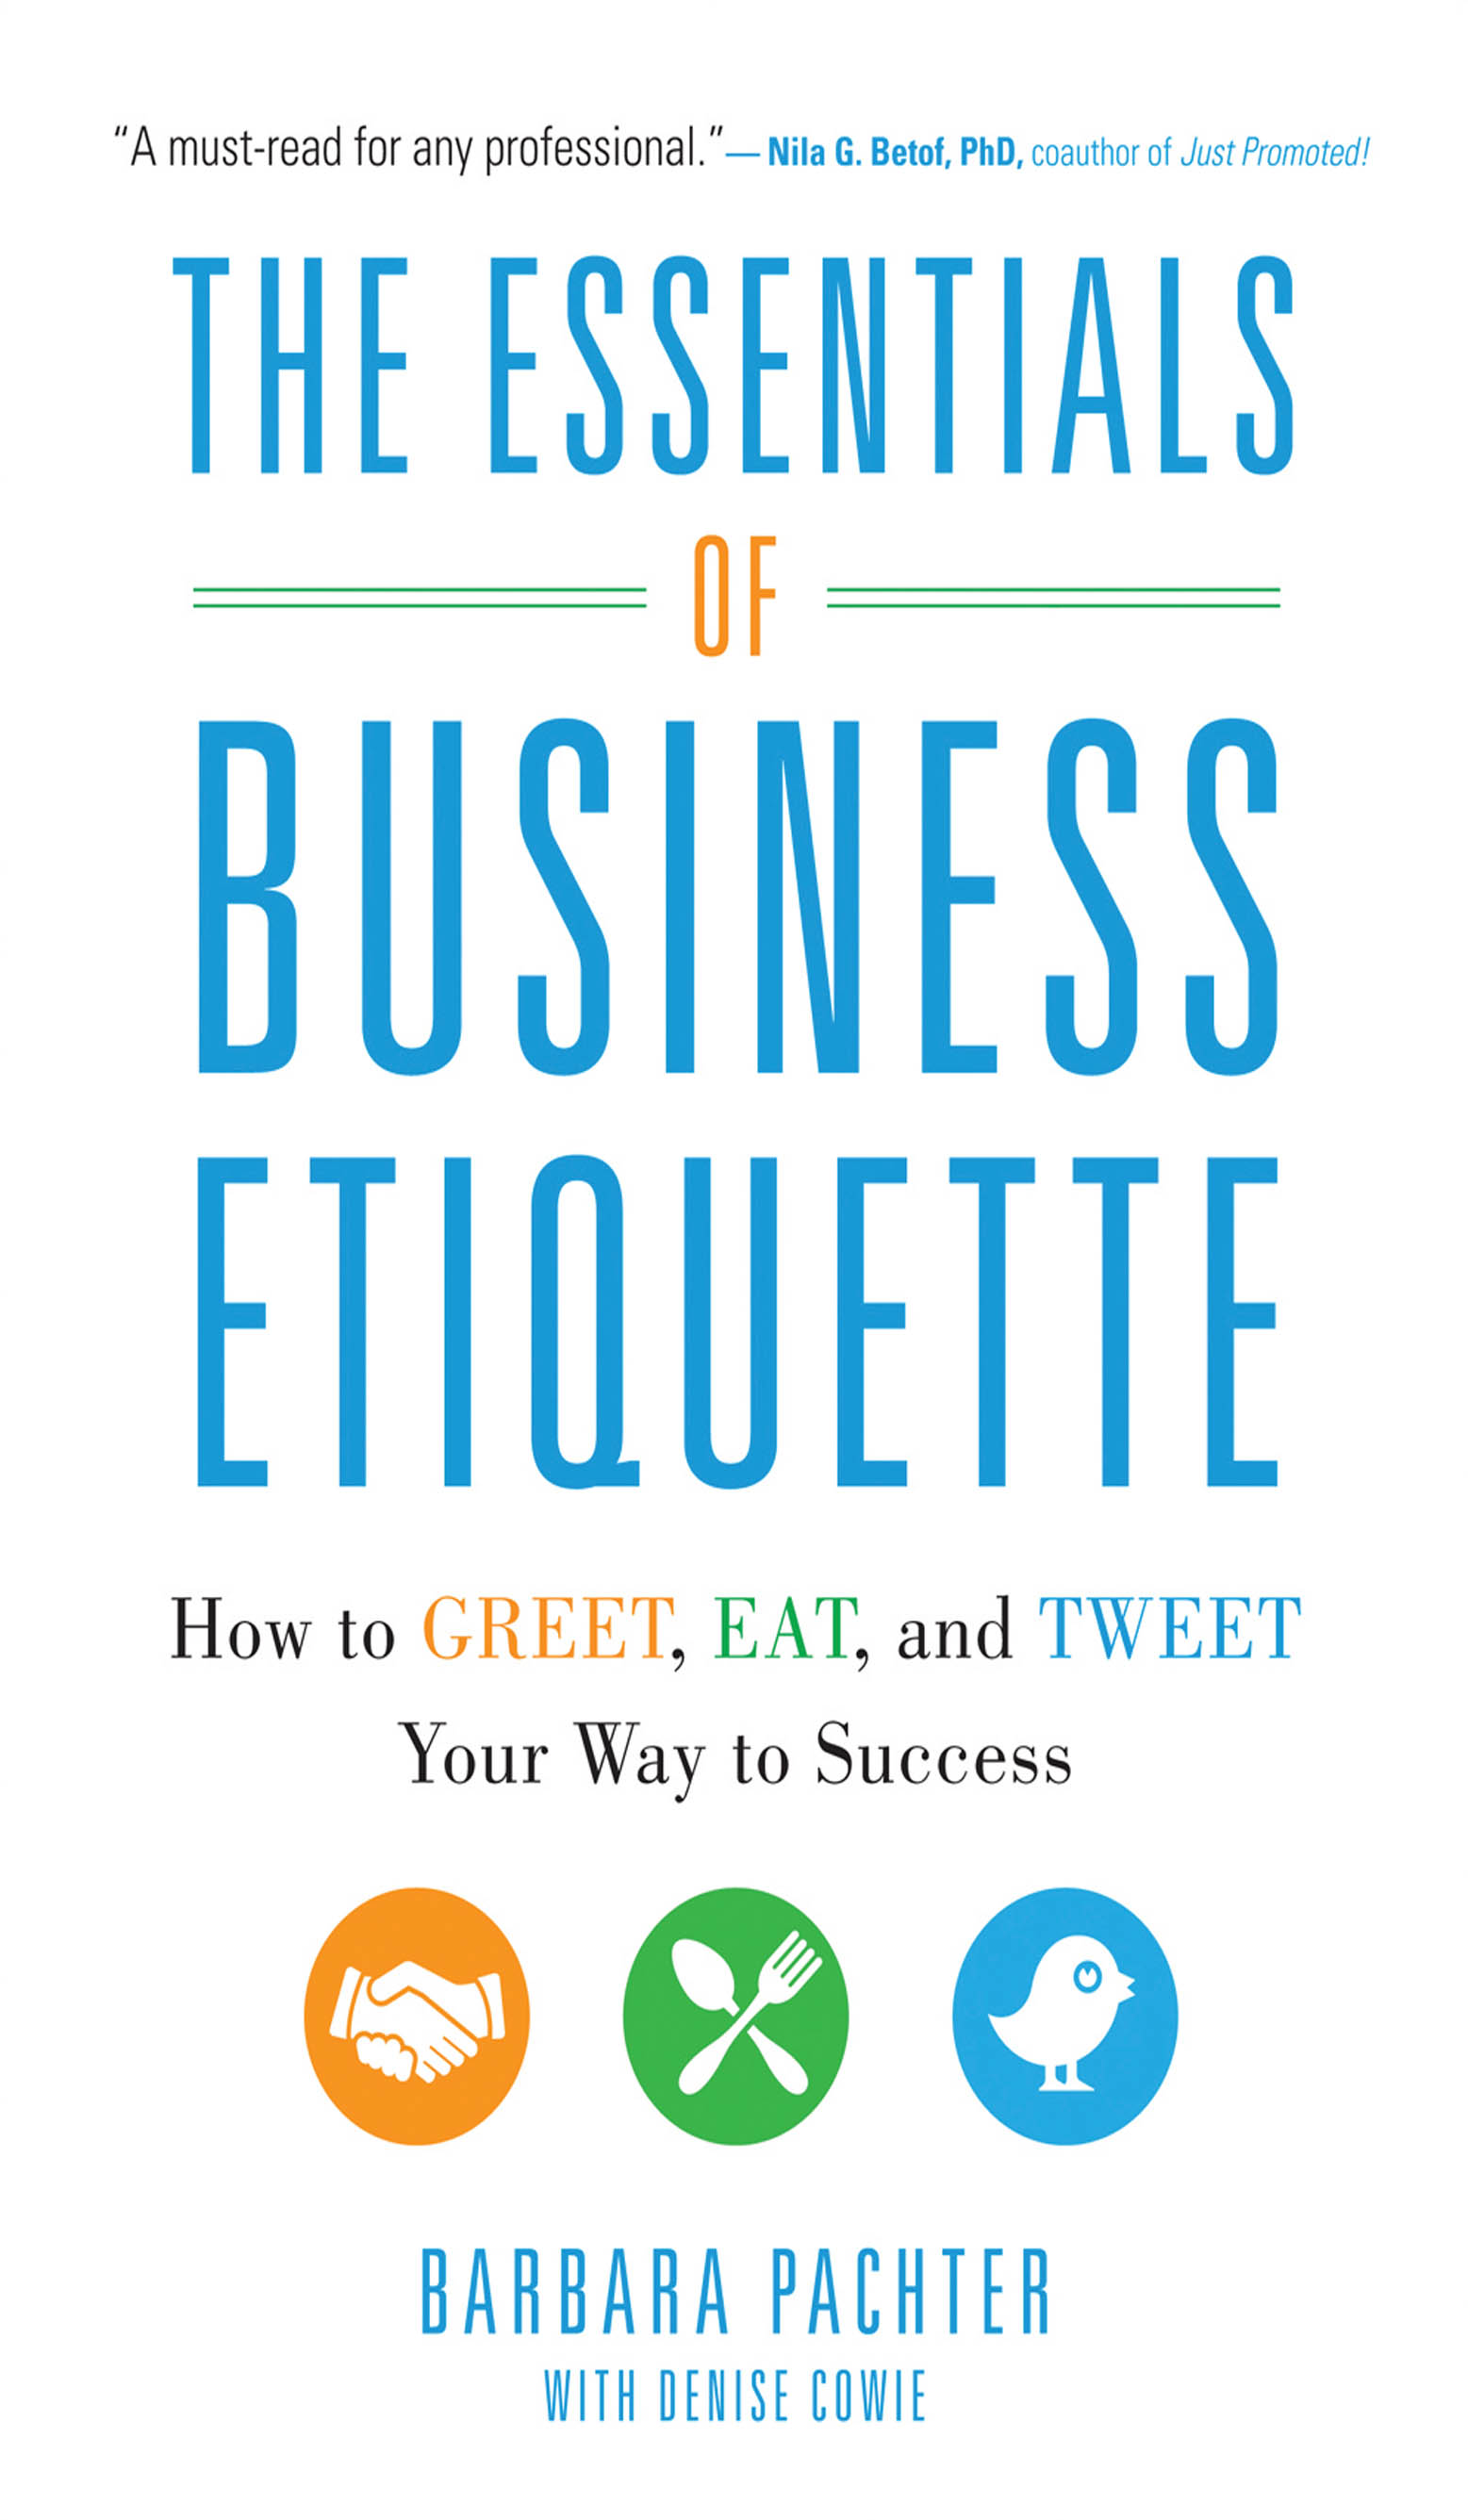 Download Ebook The Essentials of Business Etiquette: How to Greet, Eat, and Tweet Your Way to Success by Barbara Pachter Pdf